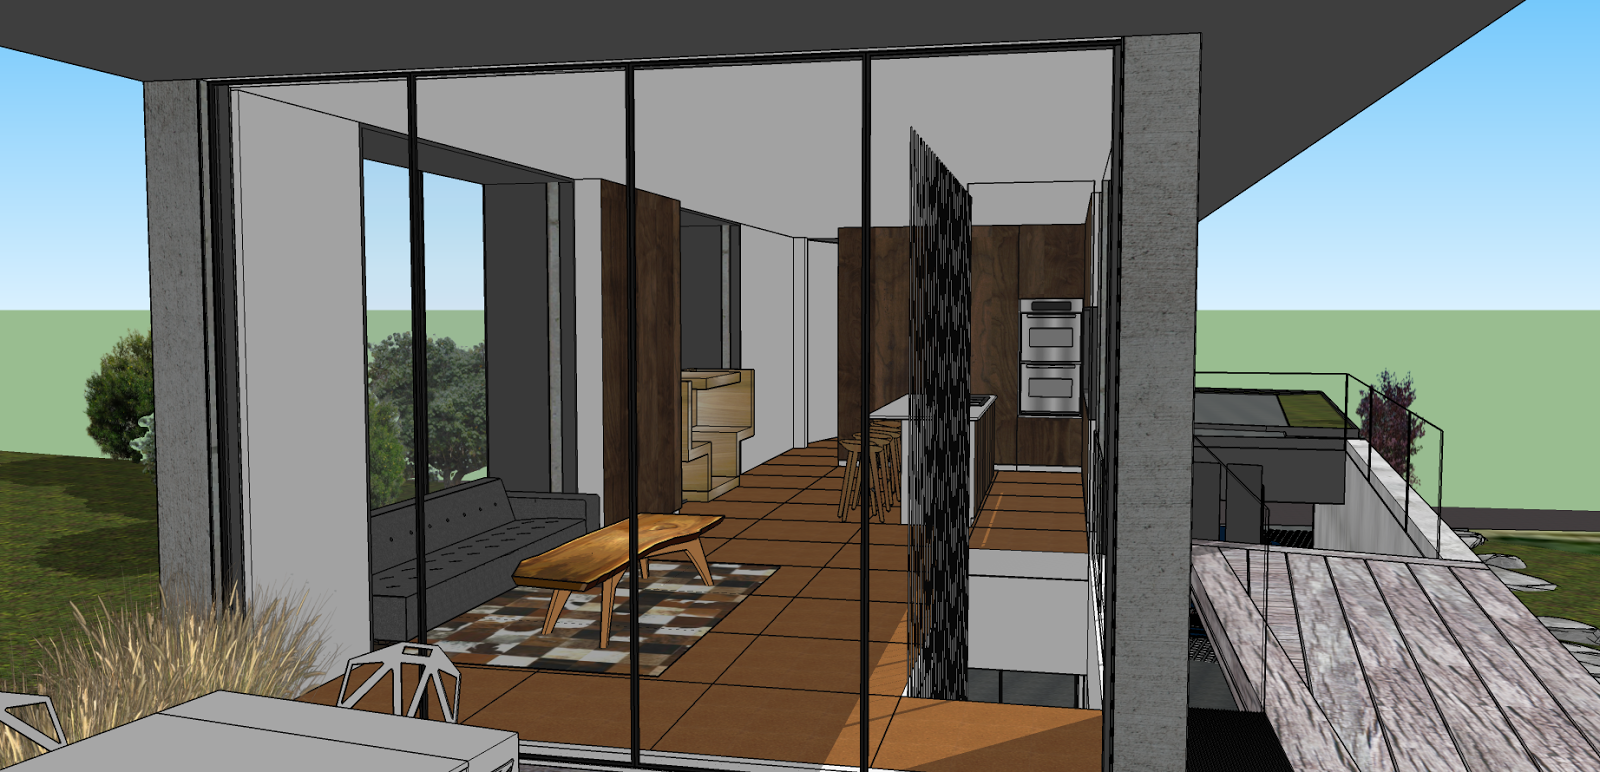 this rendering showing just the glazing gives you an idea of the importance of windows in modern design glazing is also one of the main multi functional